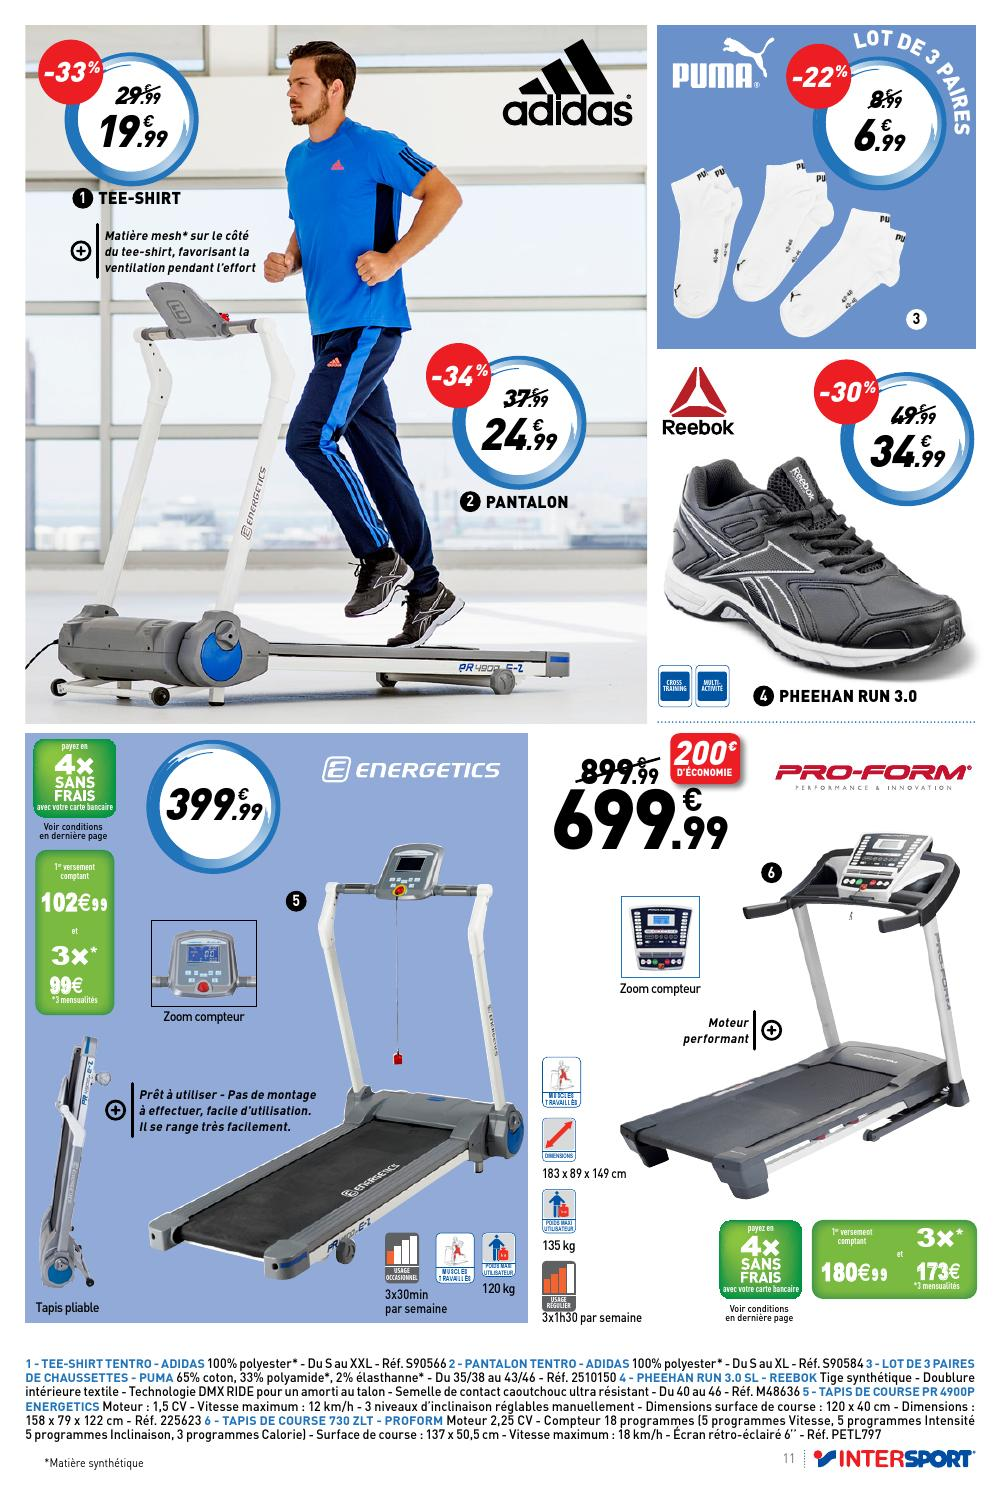 Le Fitness Vous Aller Adorer Intersport By Intersport France Page 11 Issuu